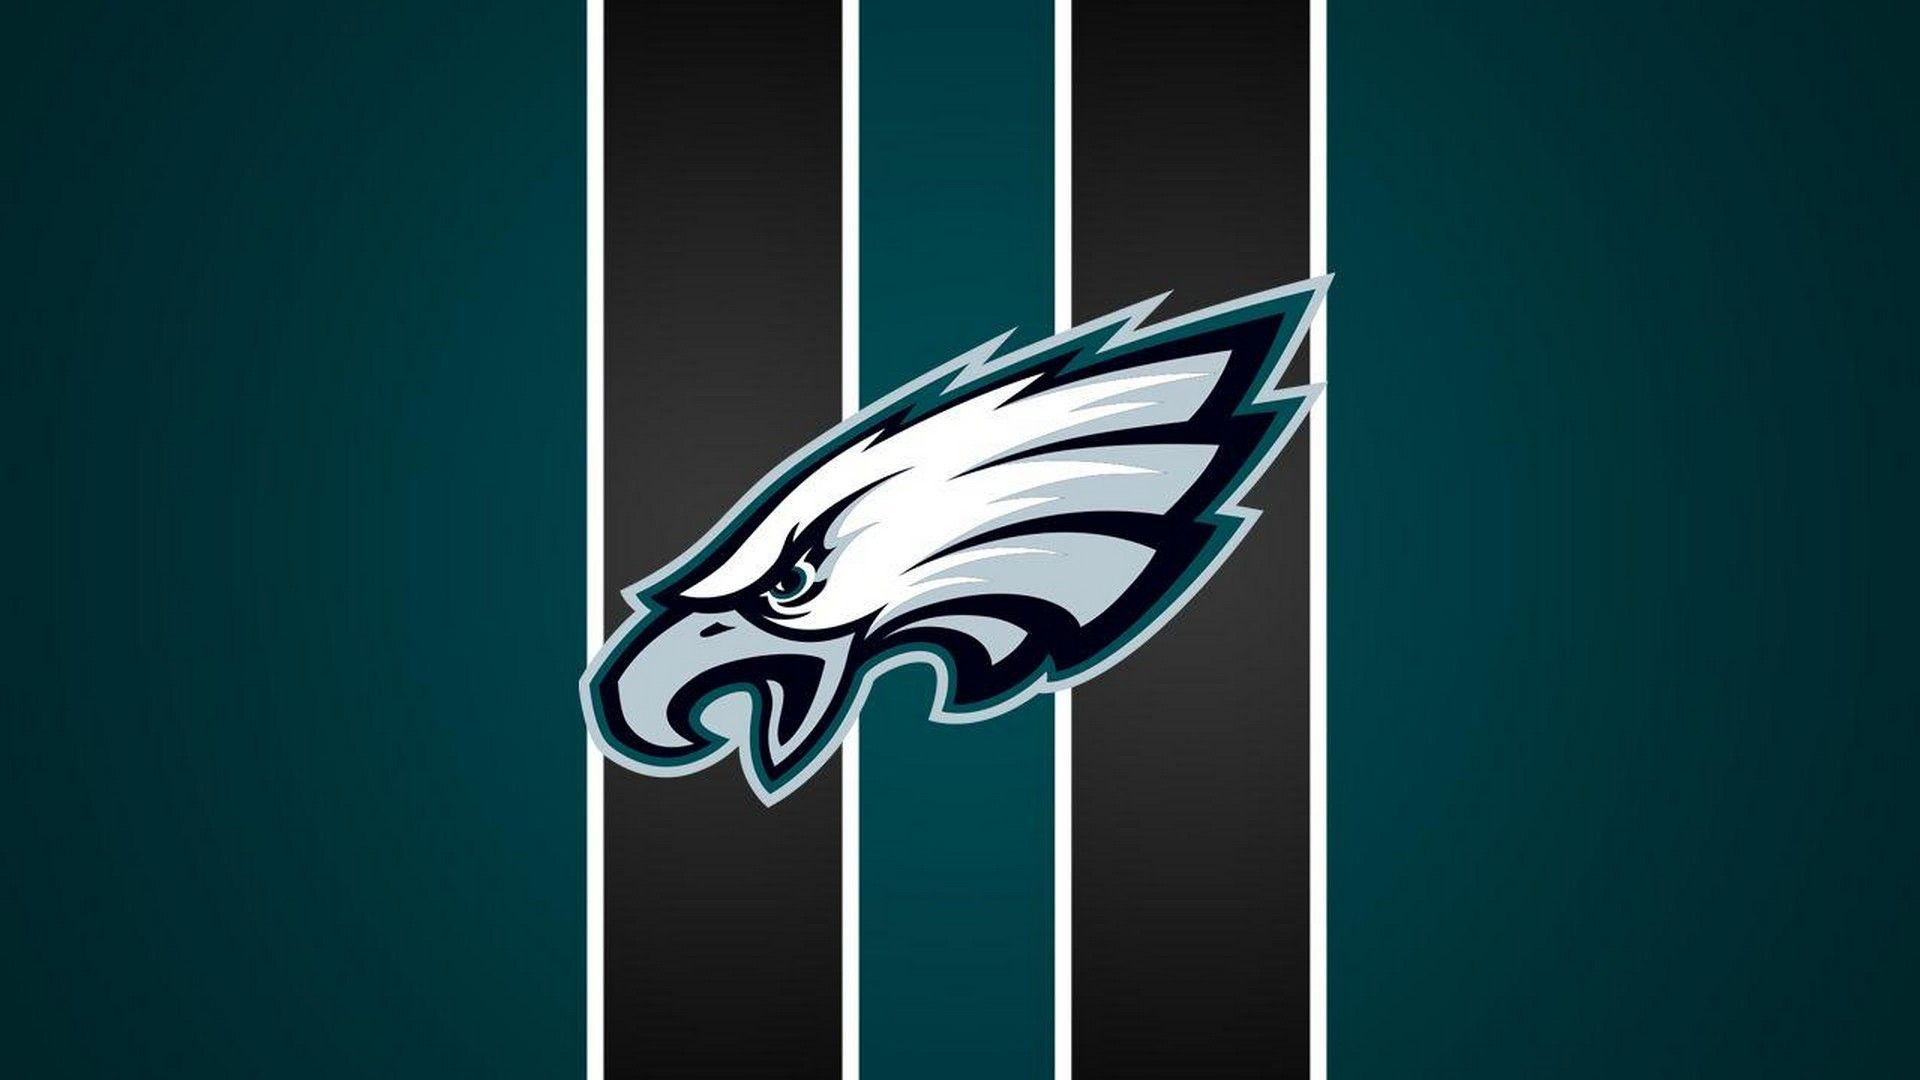 Wallpapers Eagles 2020 Nfl Football Wallpapers Eagles Football Football Wallpaper Nfl Football Wallpaper